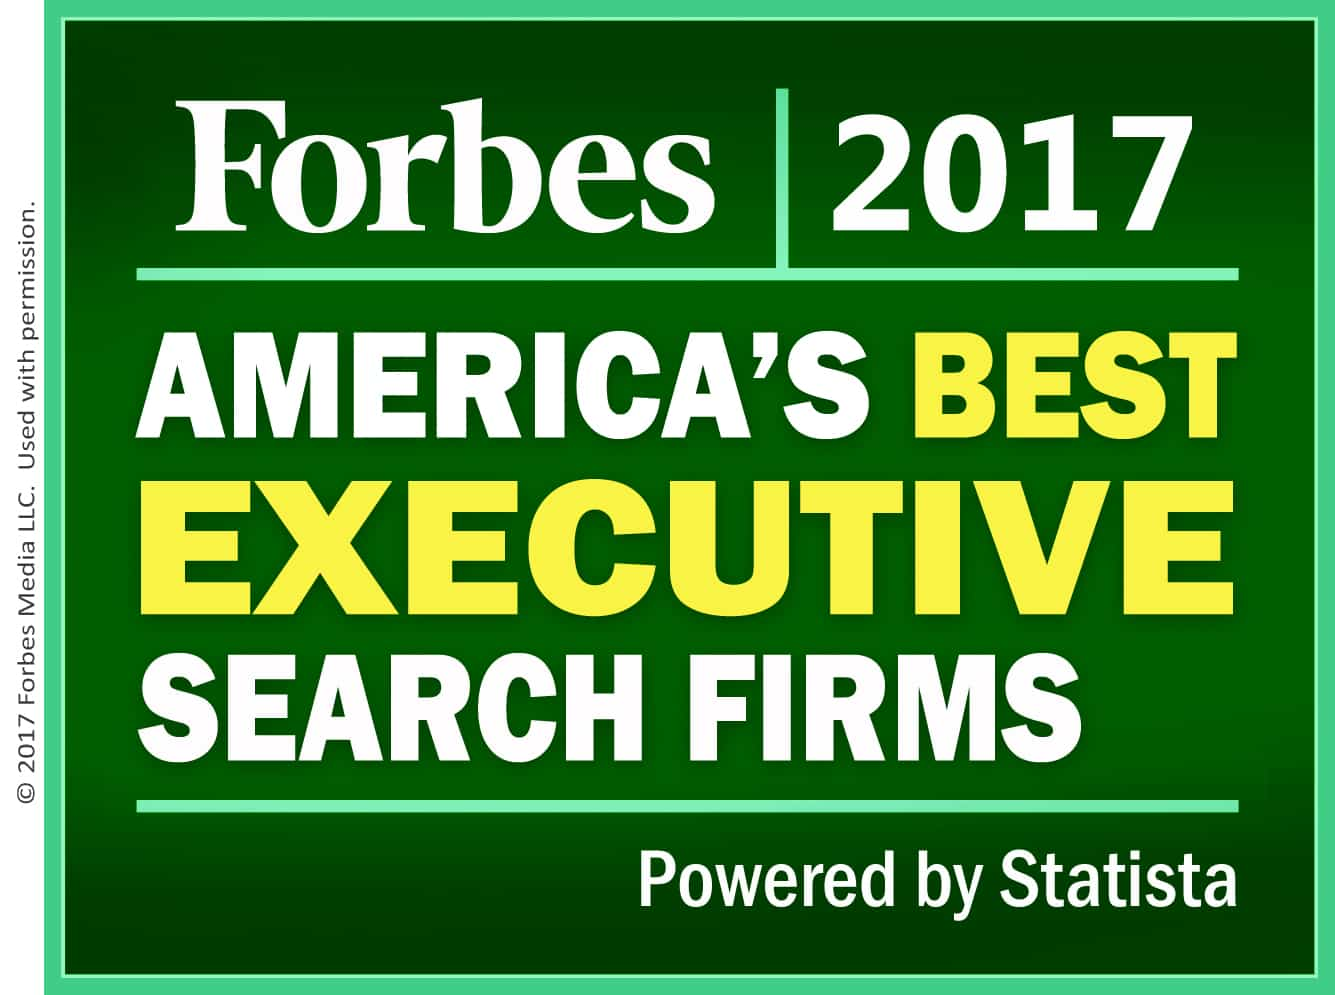 Development Guild DDI Named to Forbe Best Executive Search Firms List